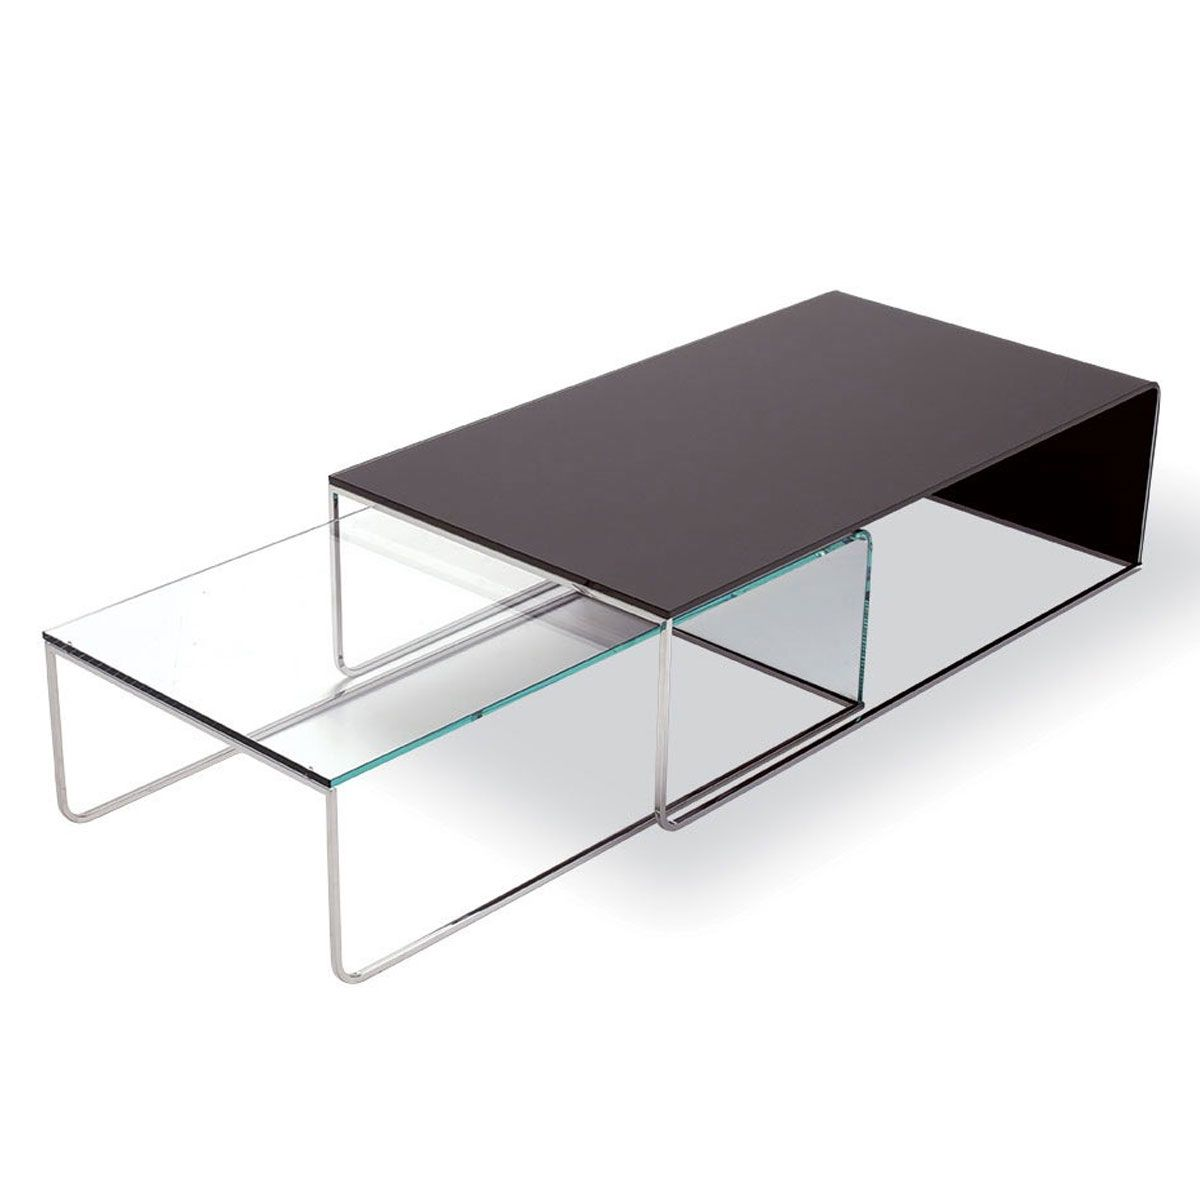 Nido Glass And Metal Coffee Table By Sovet Italia   Klarity